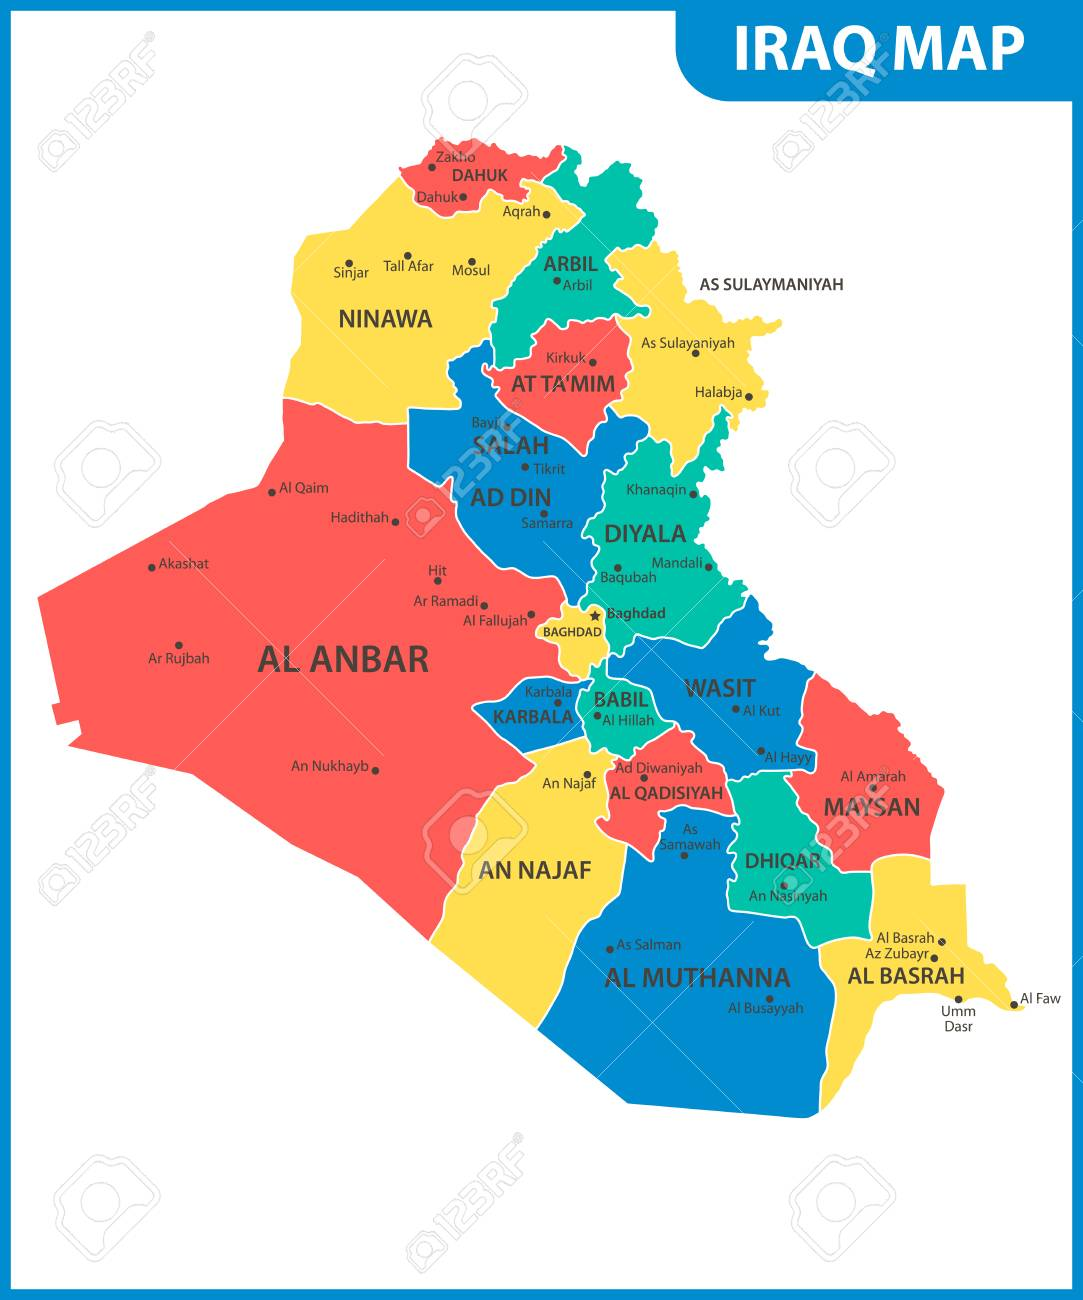 The Detailed Map Of Iraq With Regions Or States And Cities, Capital ...